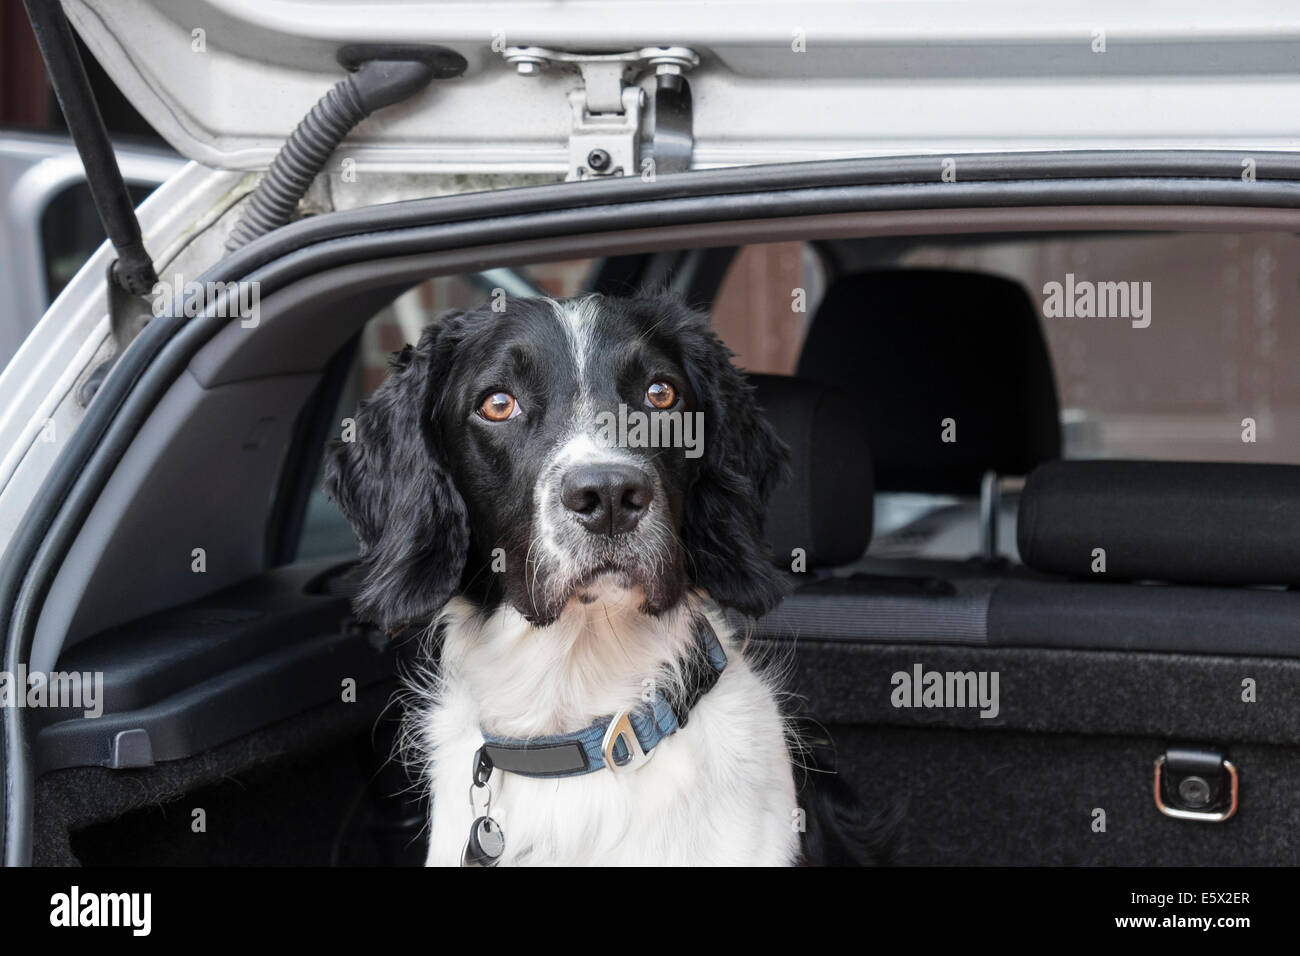 An adult English Springer Spaniel dog patiently waiting to go on a journey in a hatchback car boot with tailgate - Stock Image